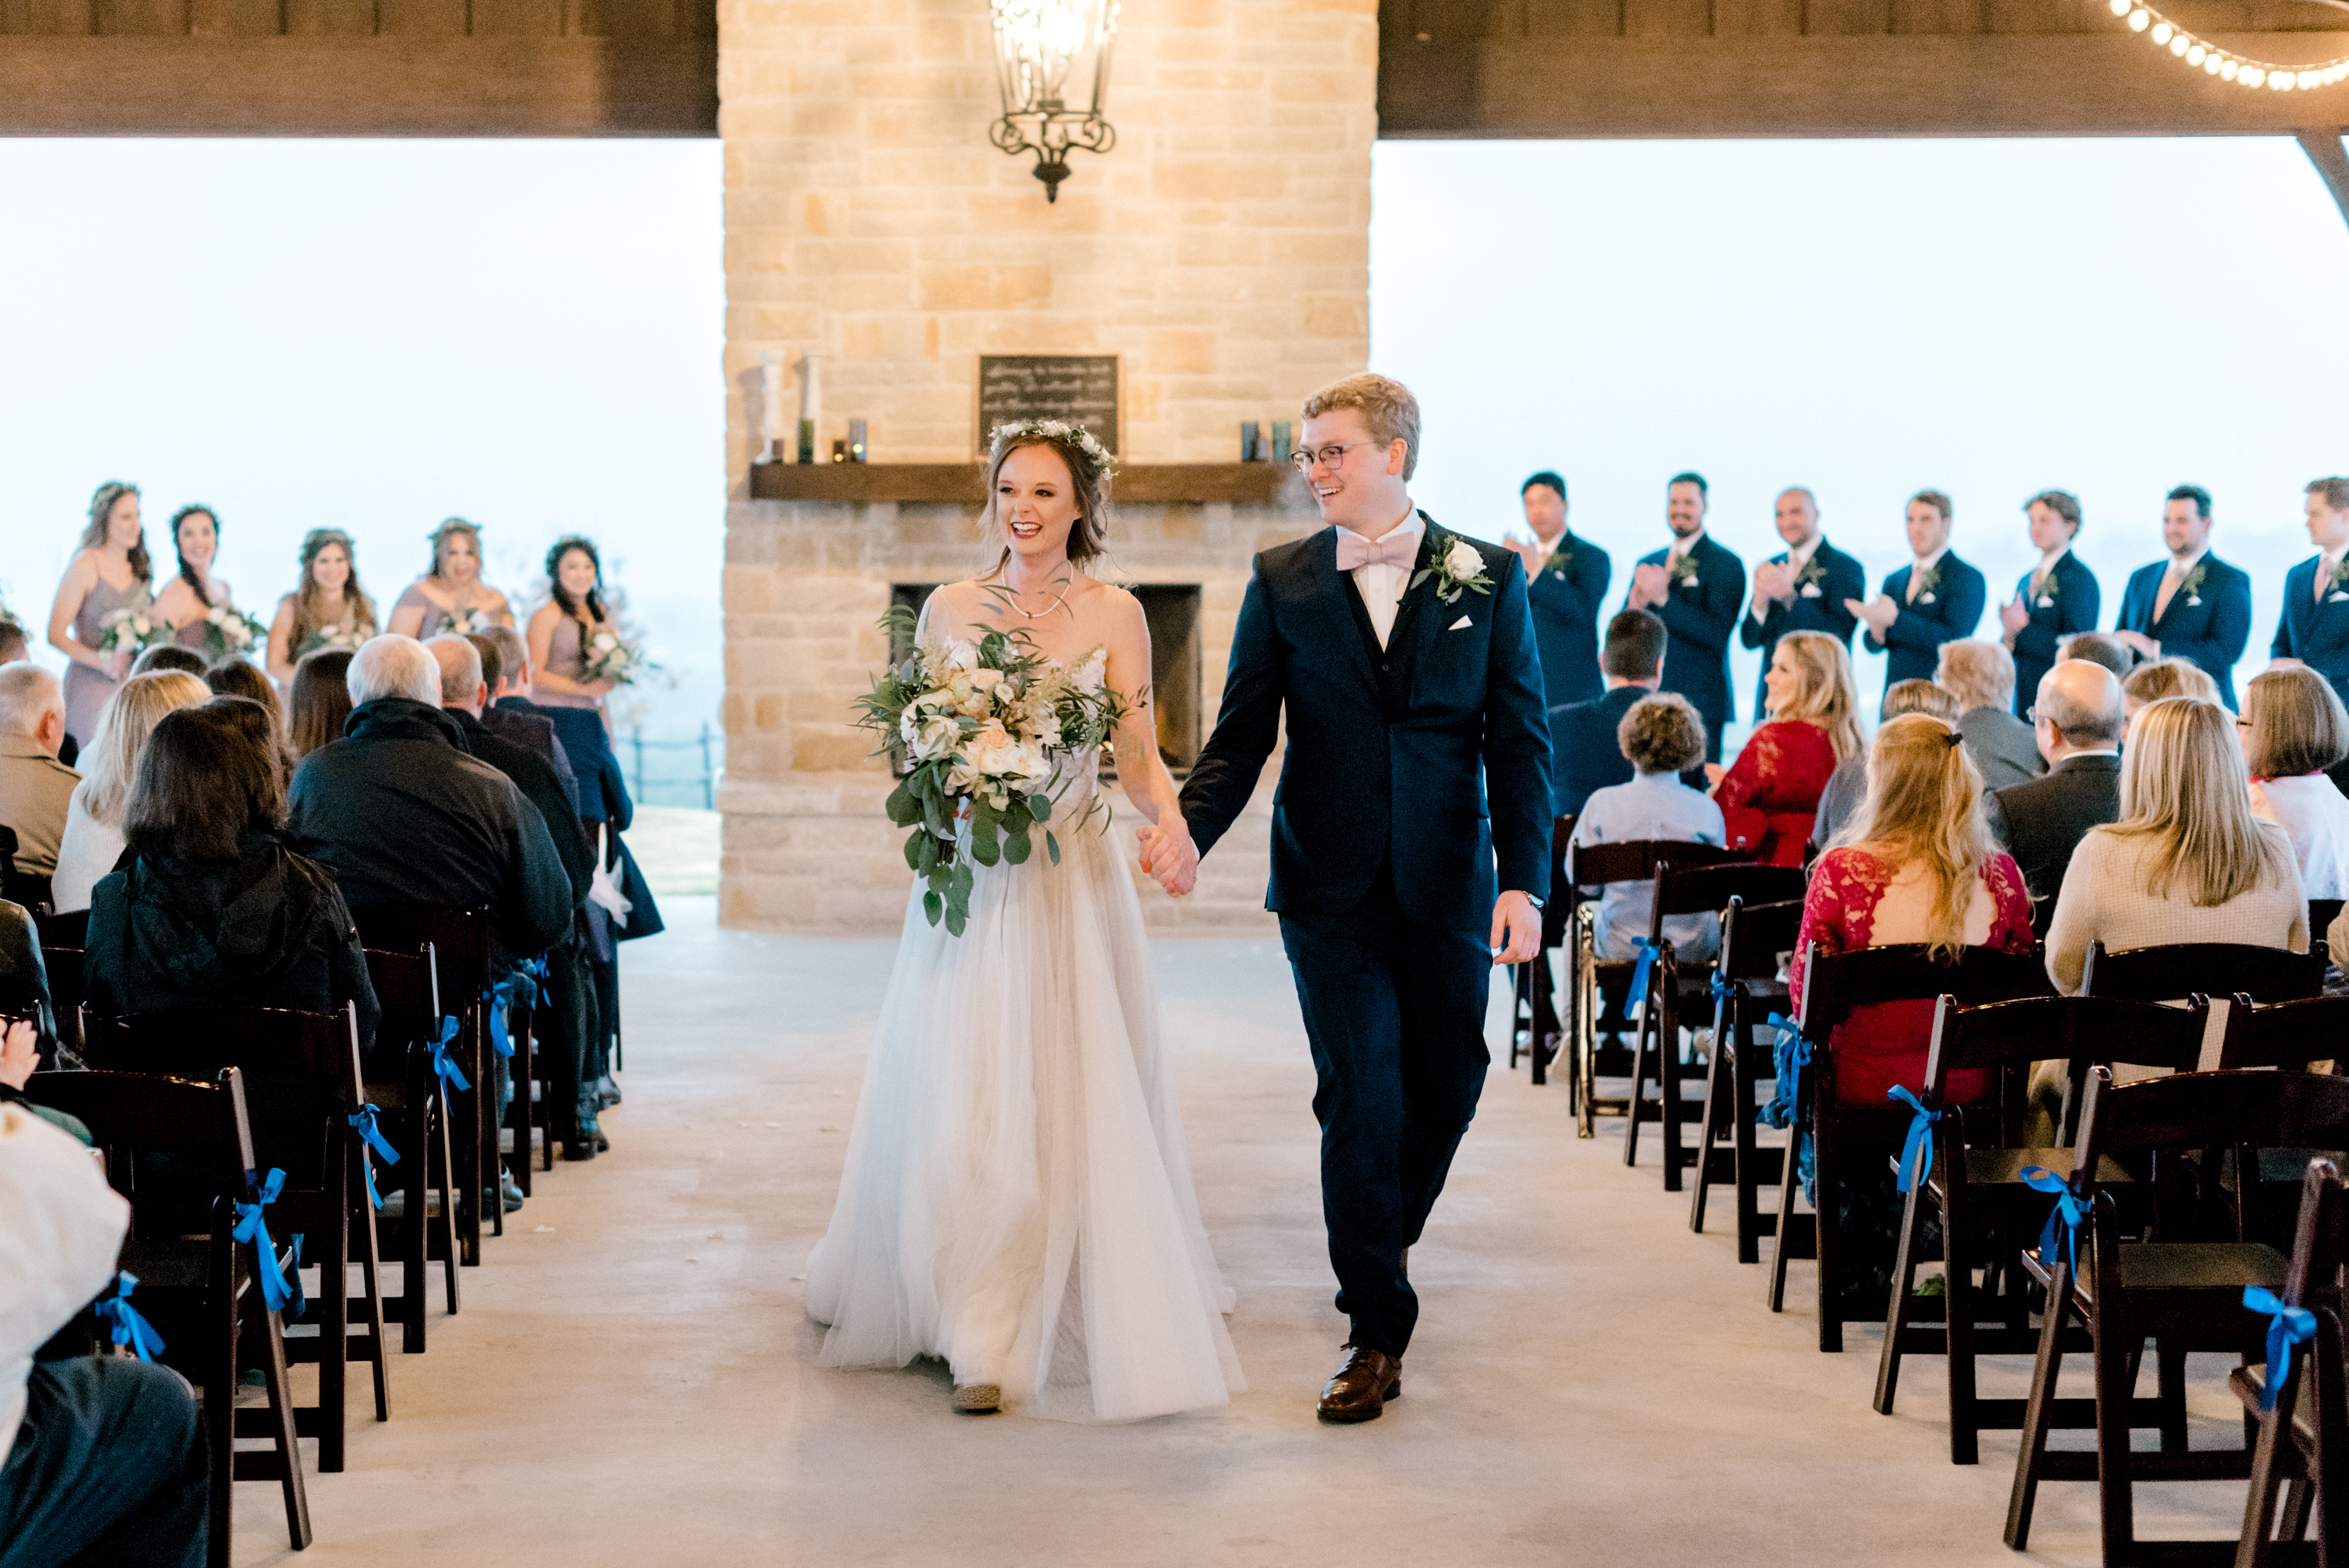 Lizzie and Michael's Dove Ridge Vineyard - Weatherford,Texas Wedding | Alexa Kay Events | Fort Worth Wedding Planner